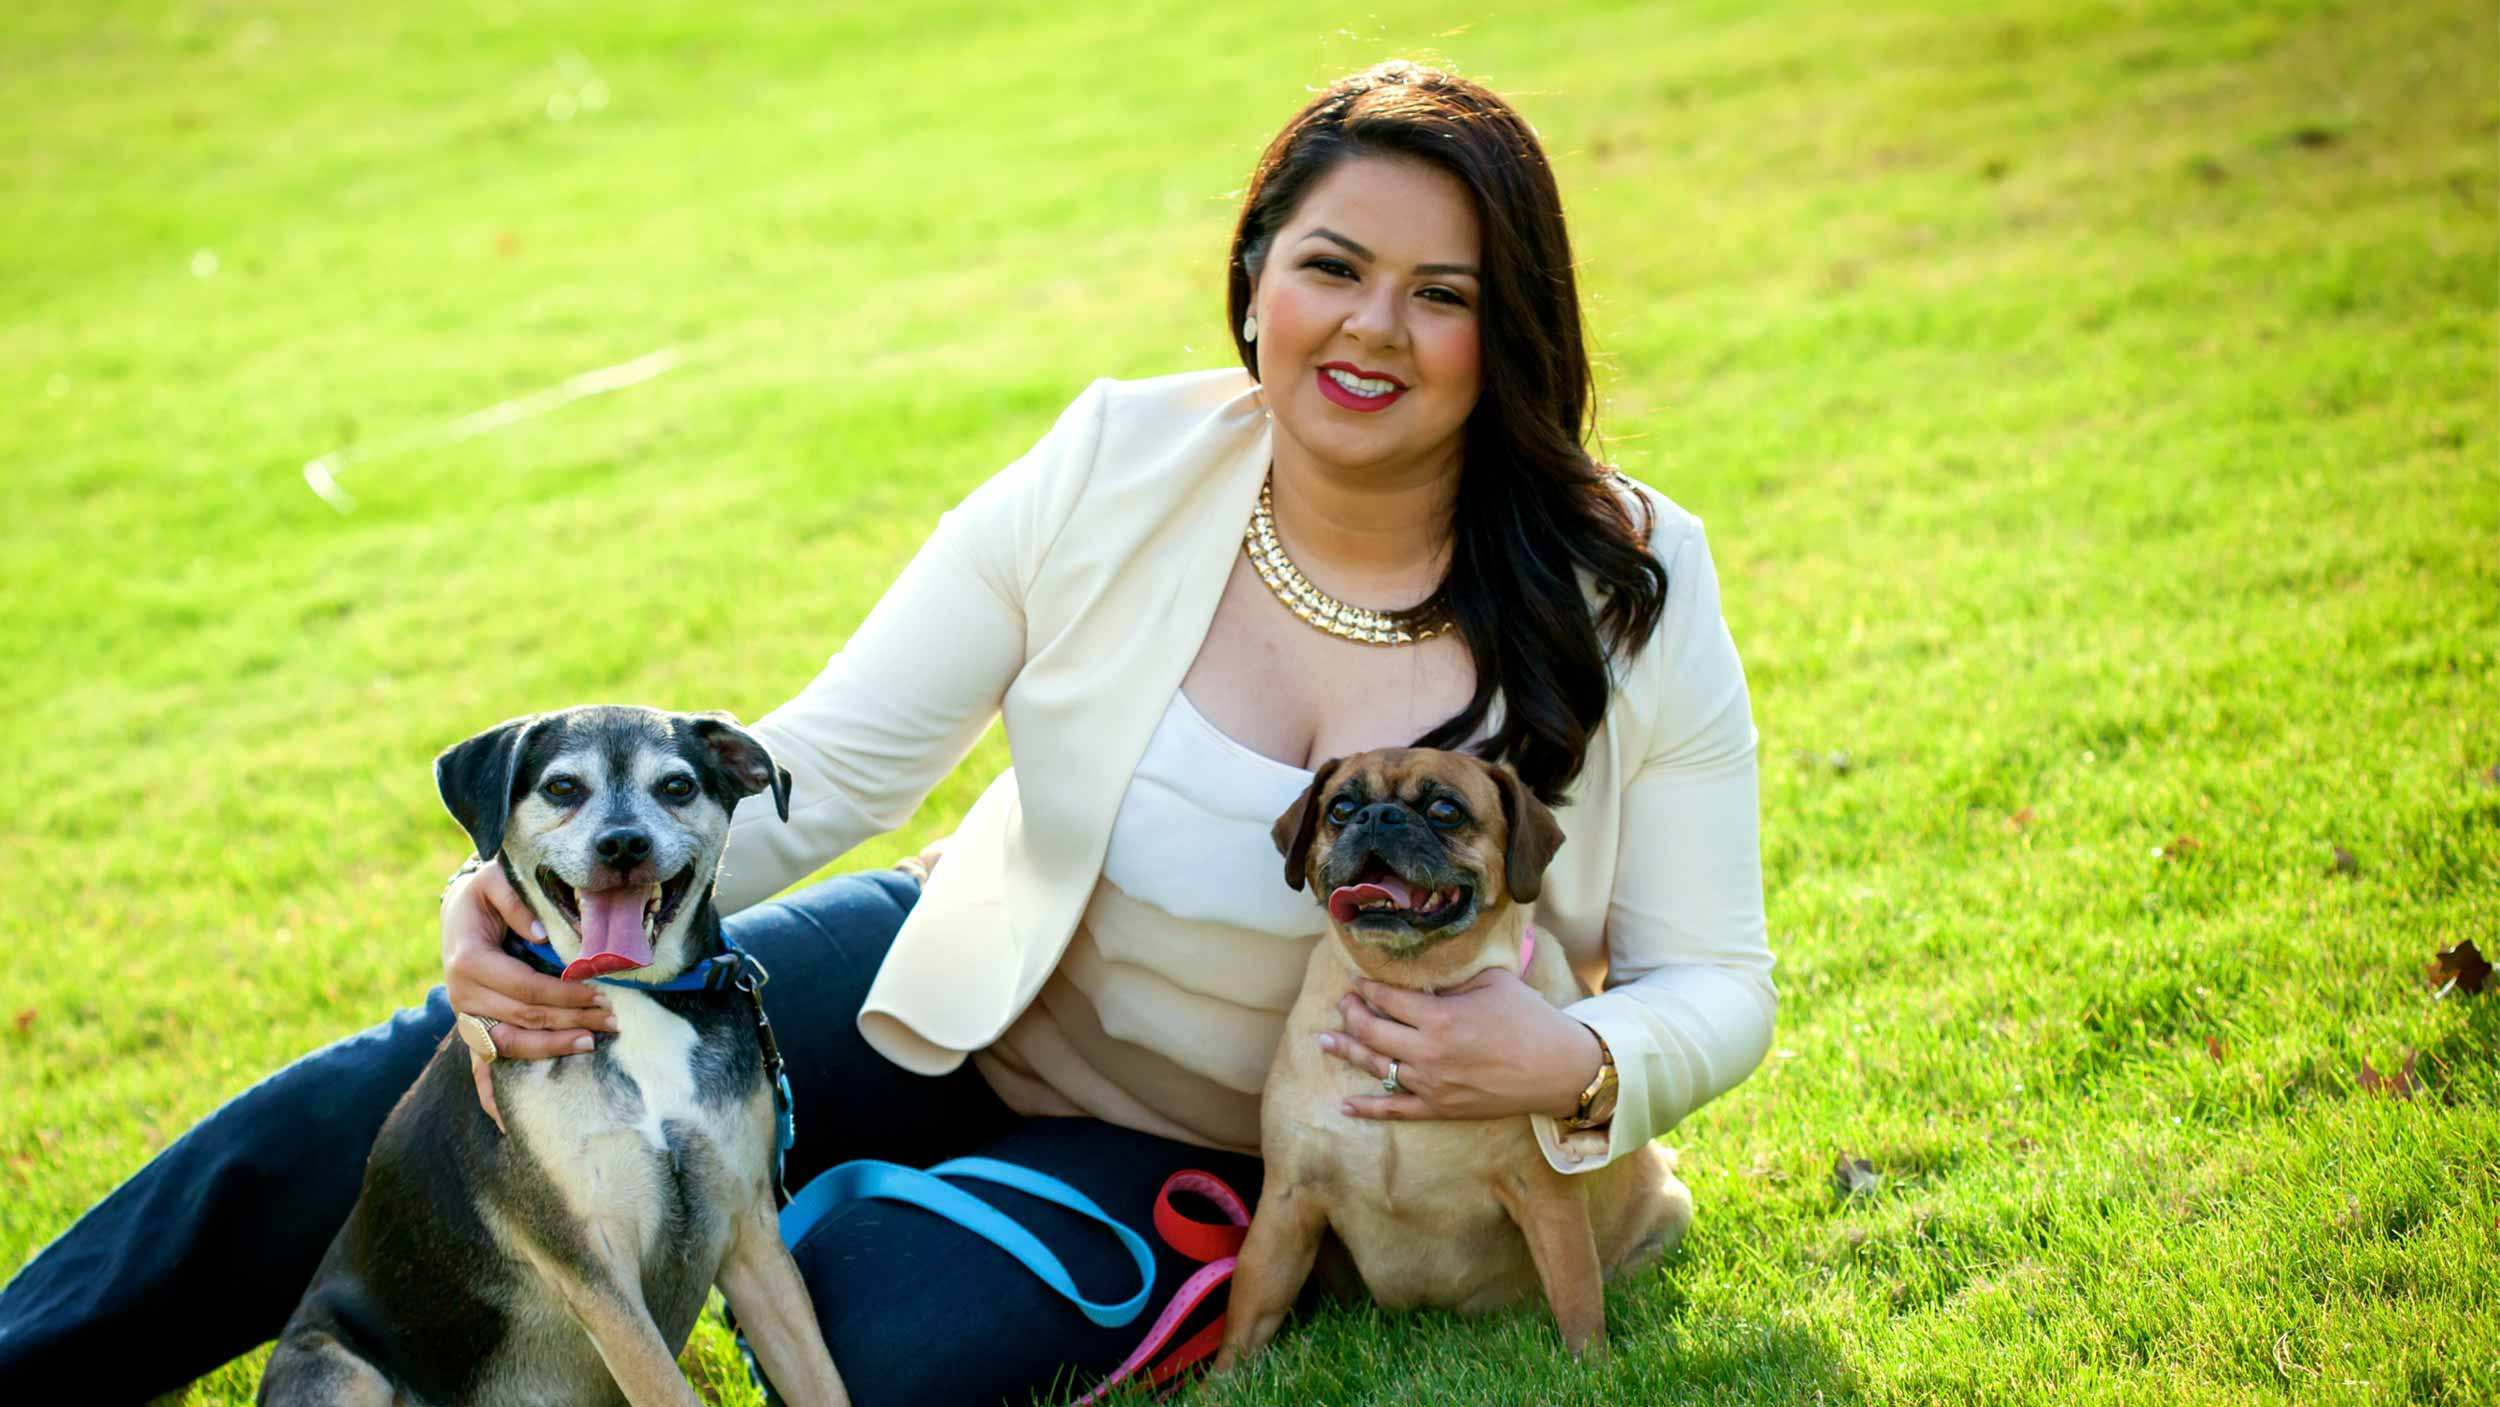 Carolina with her happy healthy dogs, Danger and Baby Girl